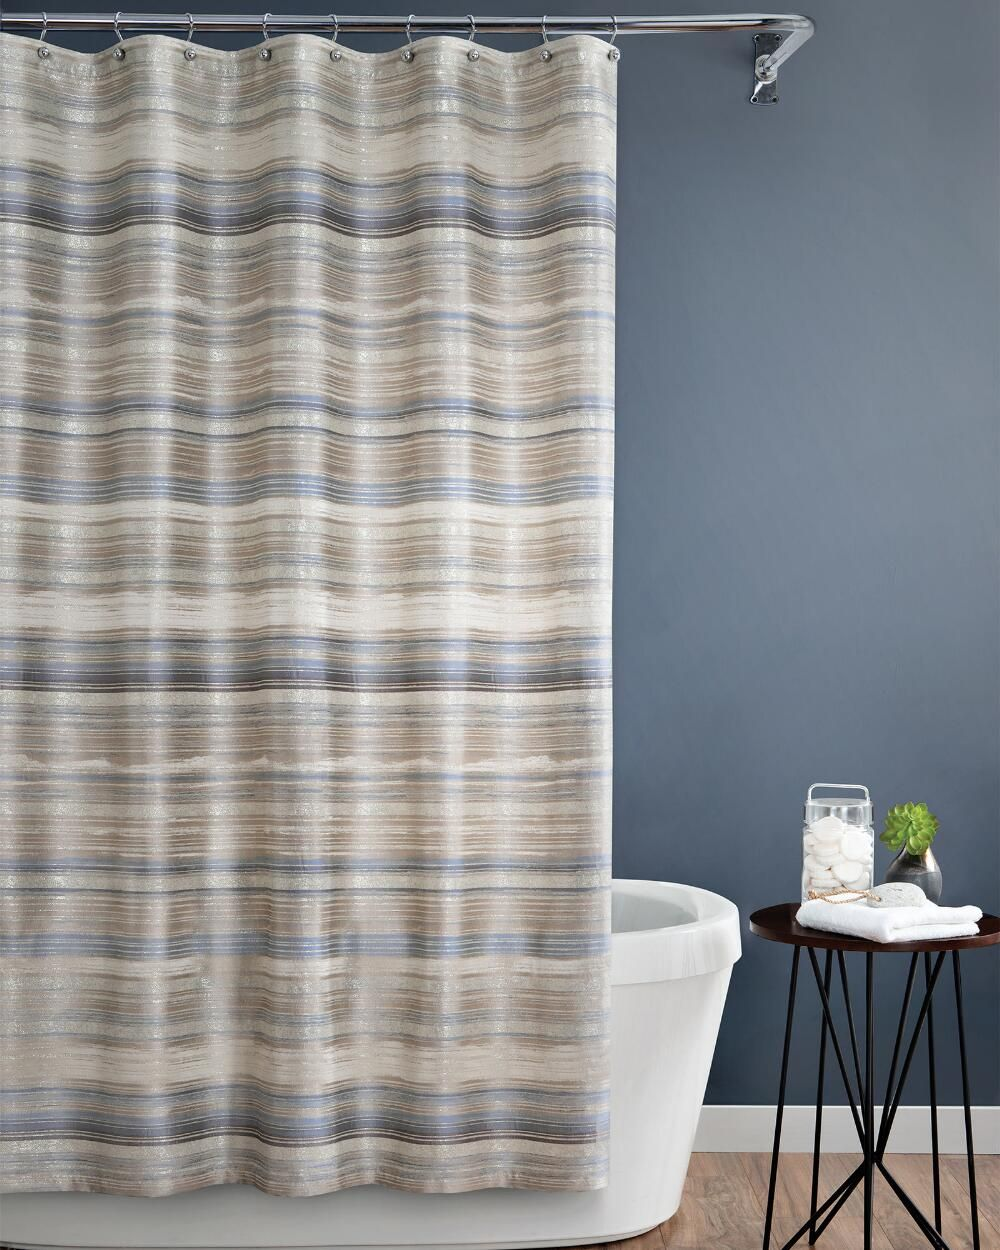 Croscill Darian Shower Curtain Shwr Curtain Polyester Fabric